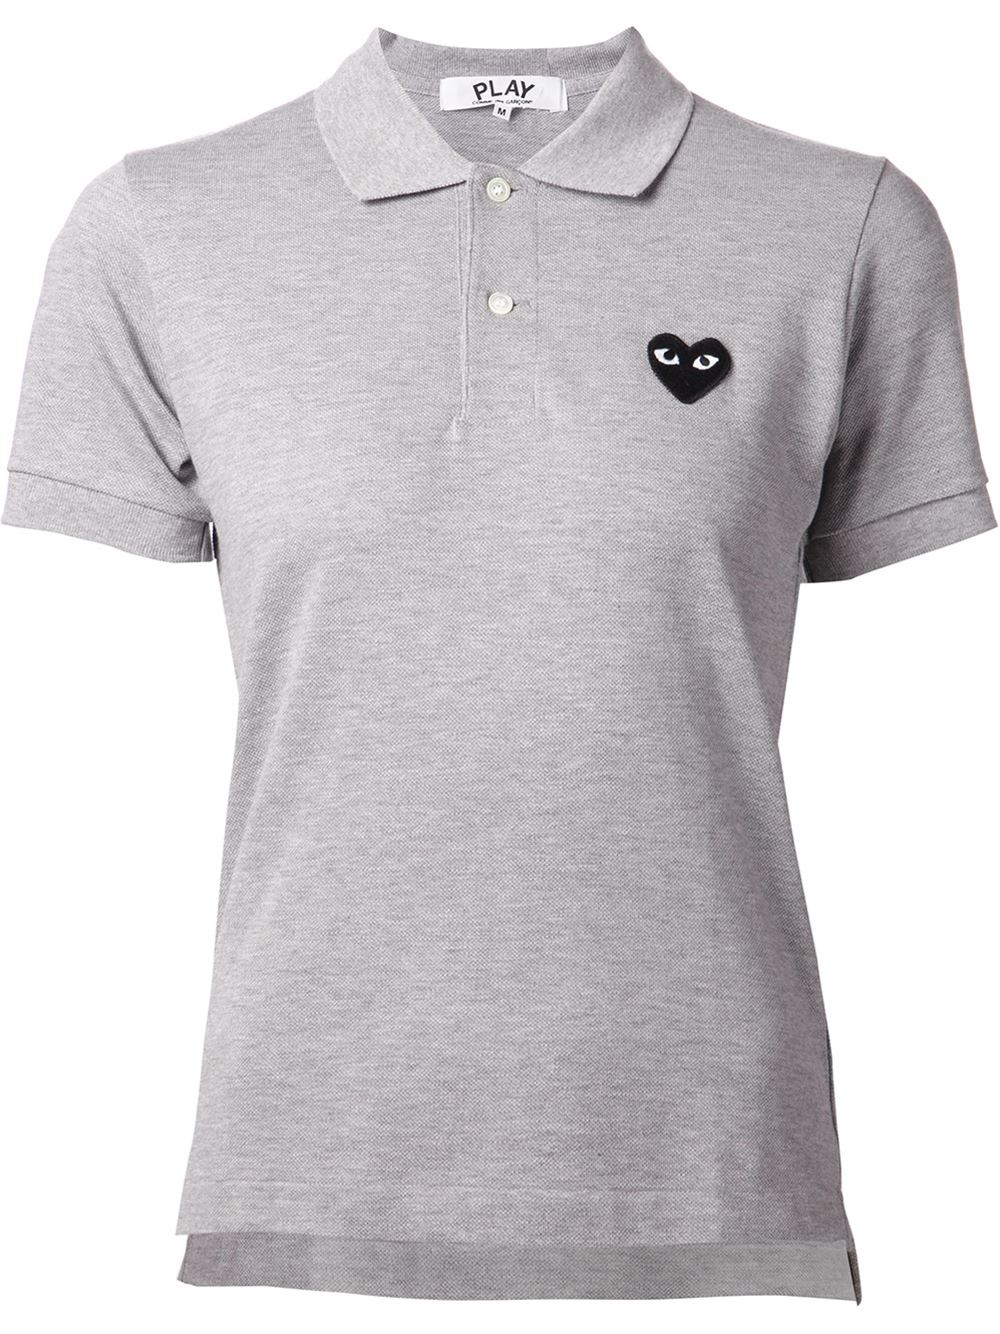 play comme des gar ons gray embroidered heart polo shirt. Black Bedroom Furniture Sets. Home Design Ideas